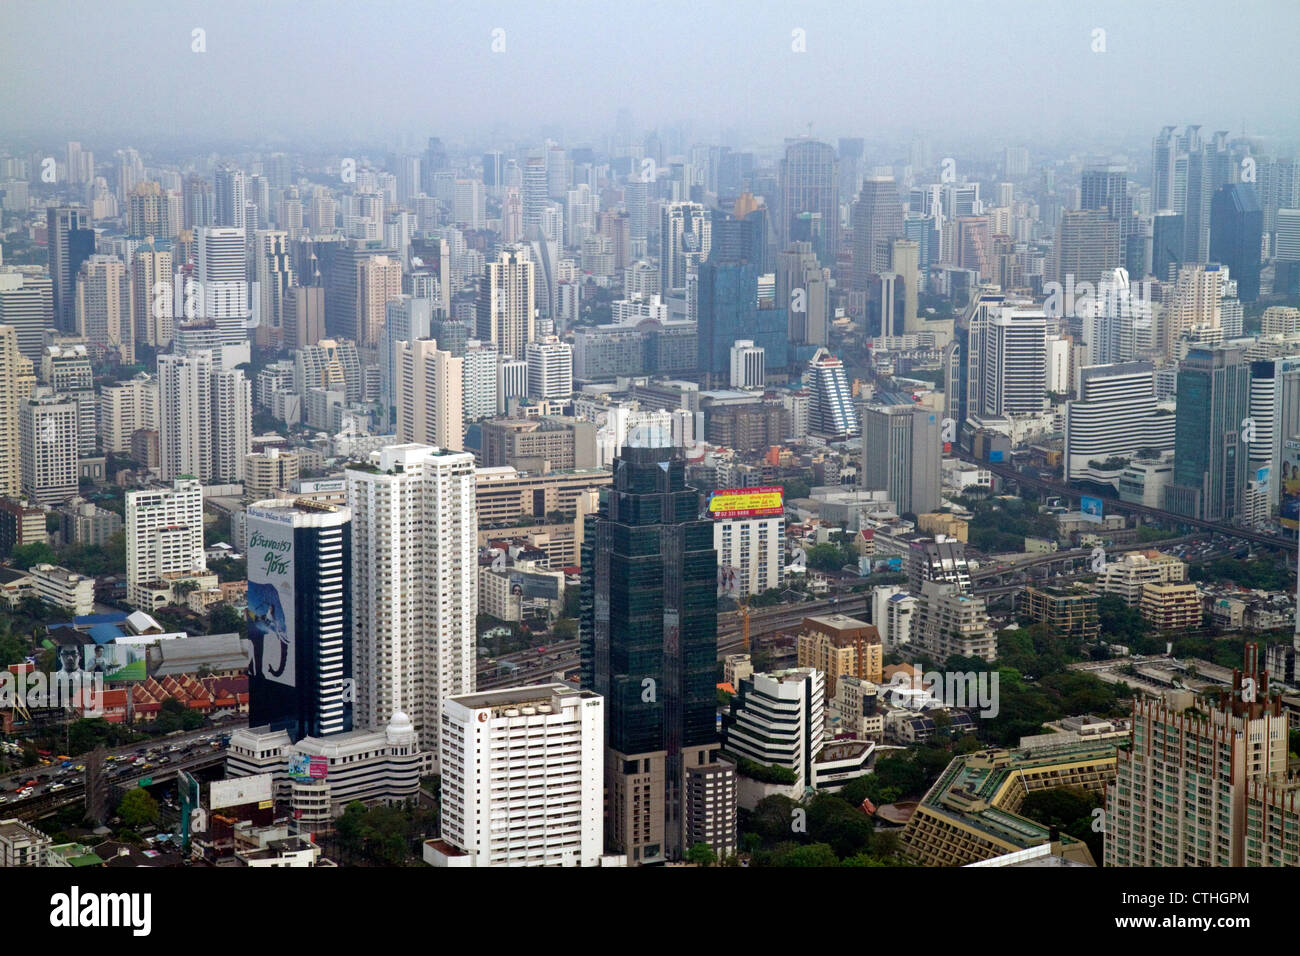 View of the Bangkok cityscape taken from the Baiyoke Tower II showing air pollution and smog, Thailand. - Stock Image